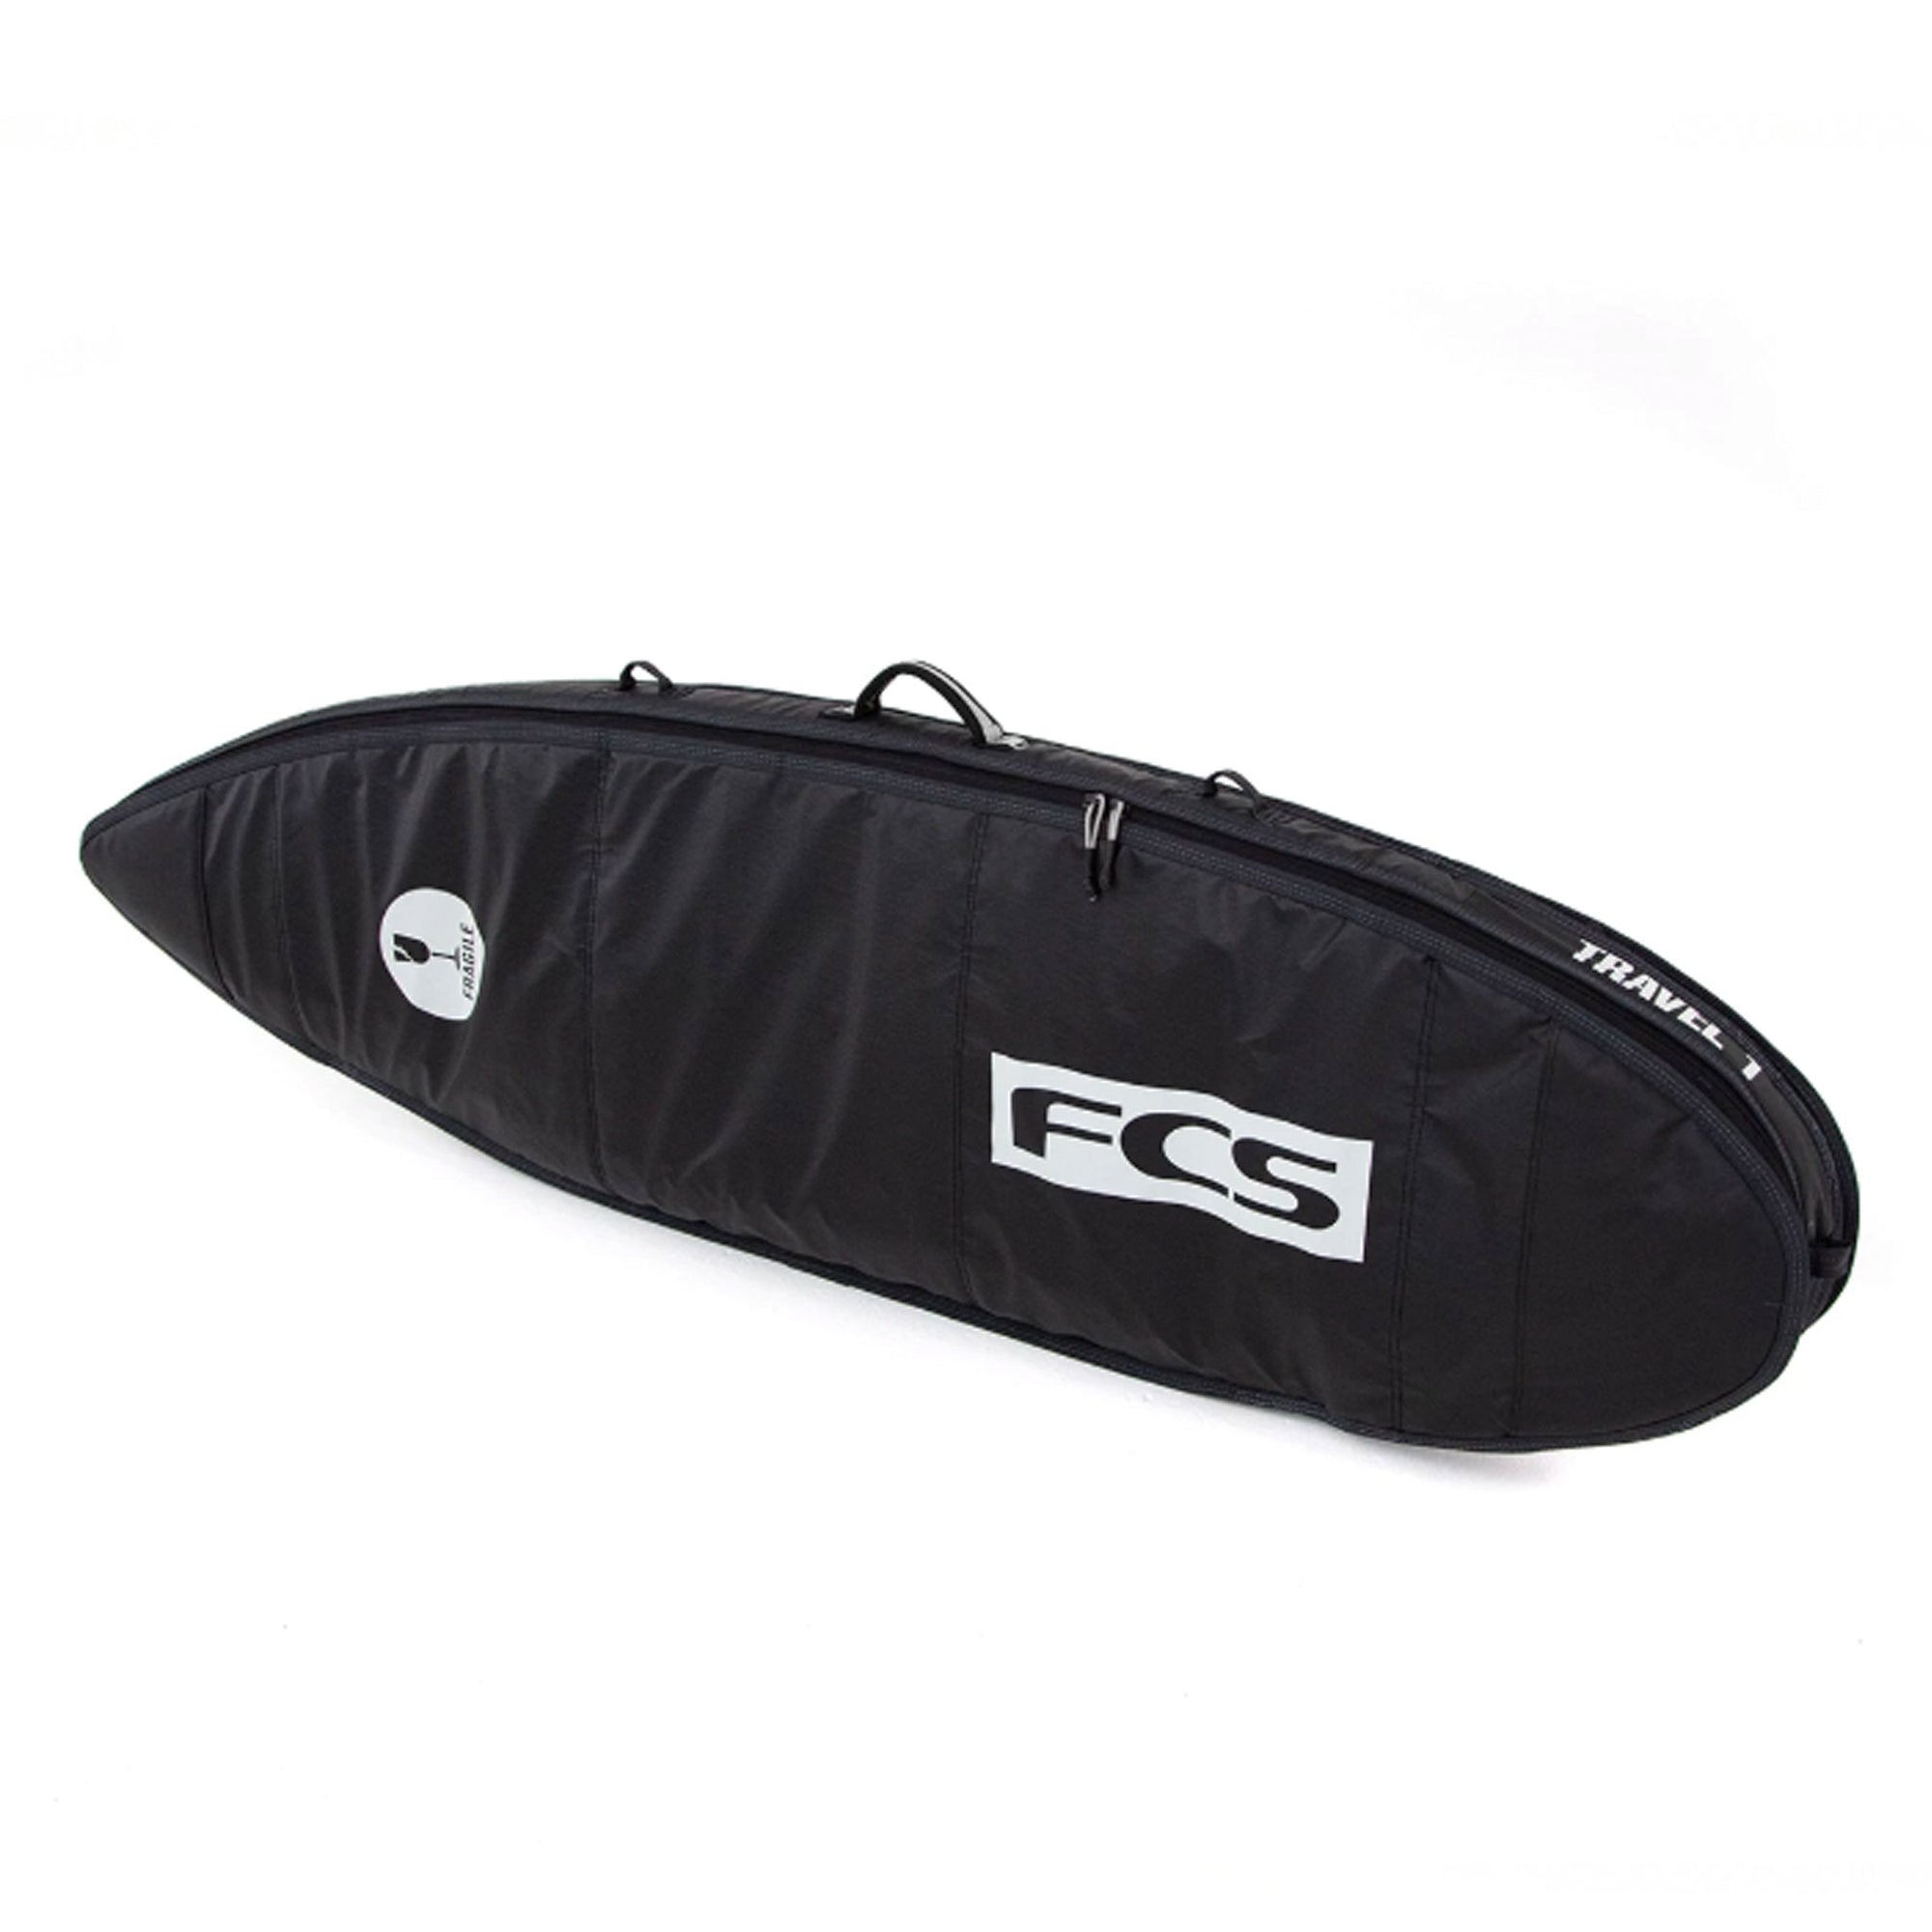 FCS Travel 1 All Purpose Board Bag